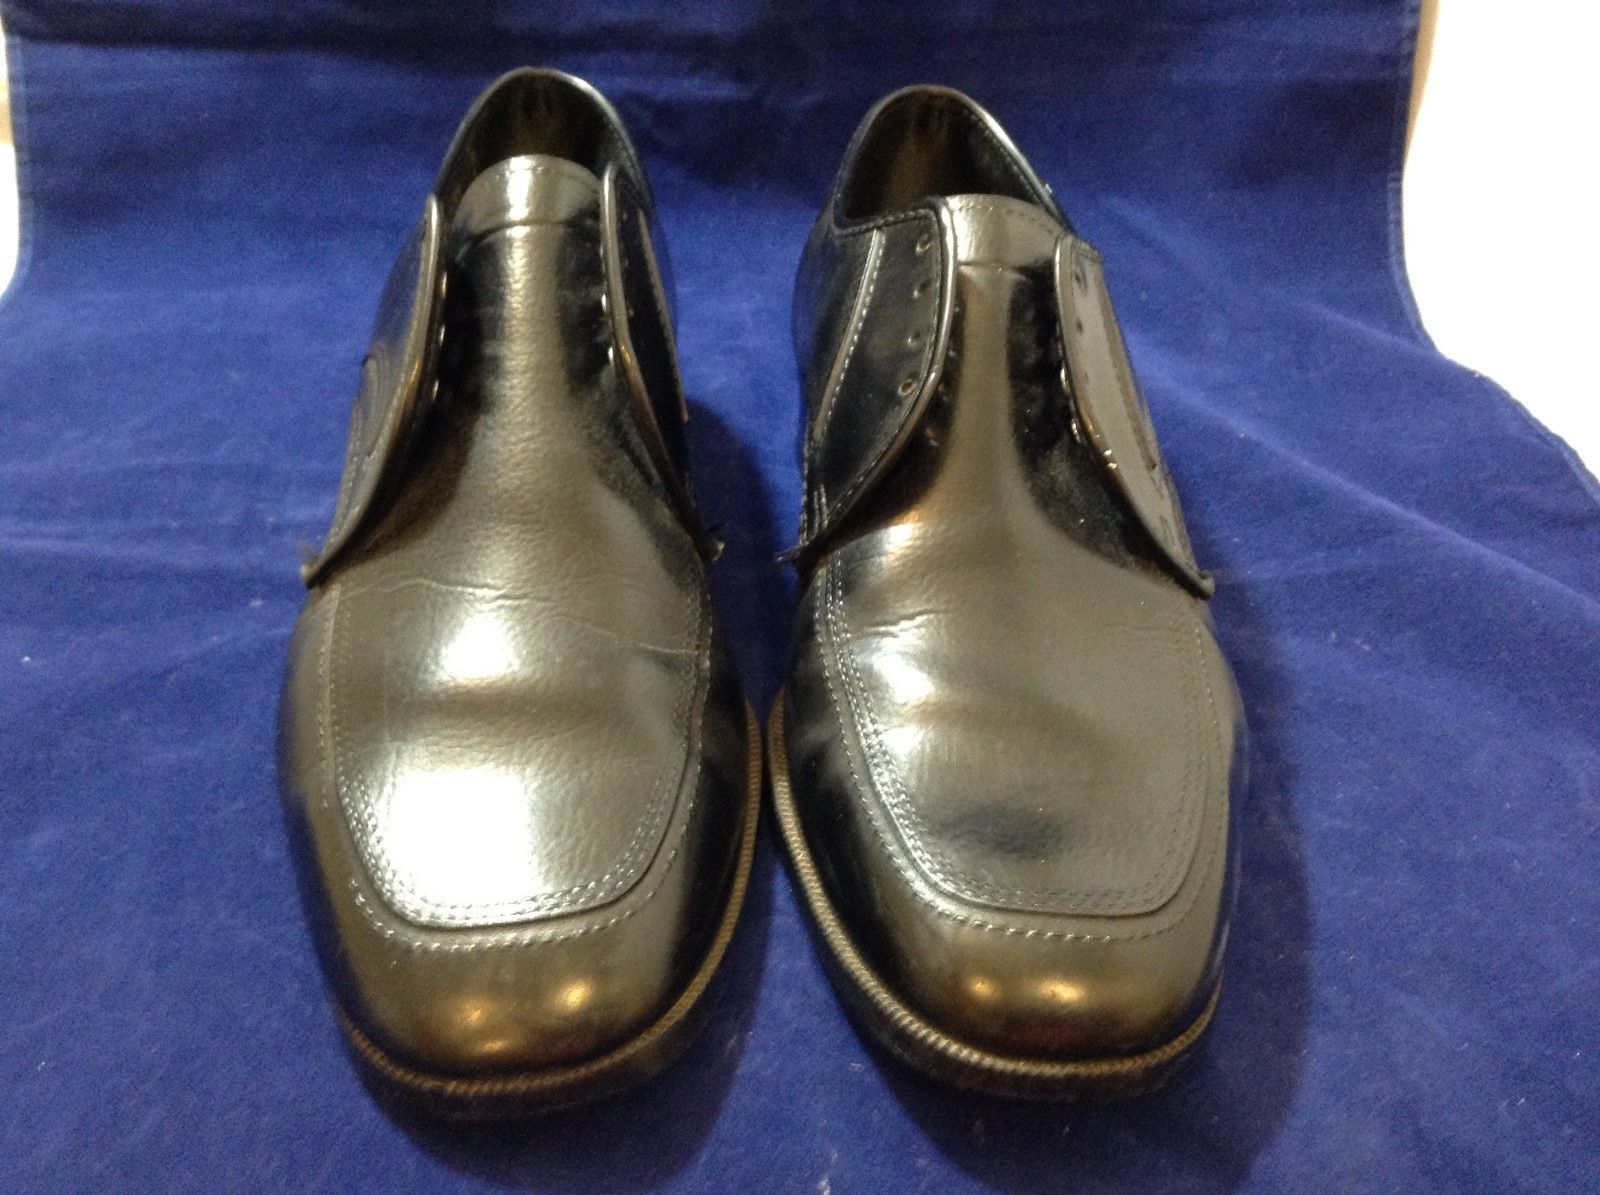 Men's Black Dress Shoes Size 8.5EEE